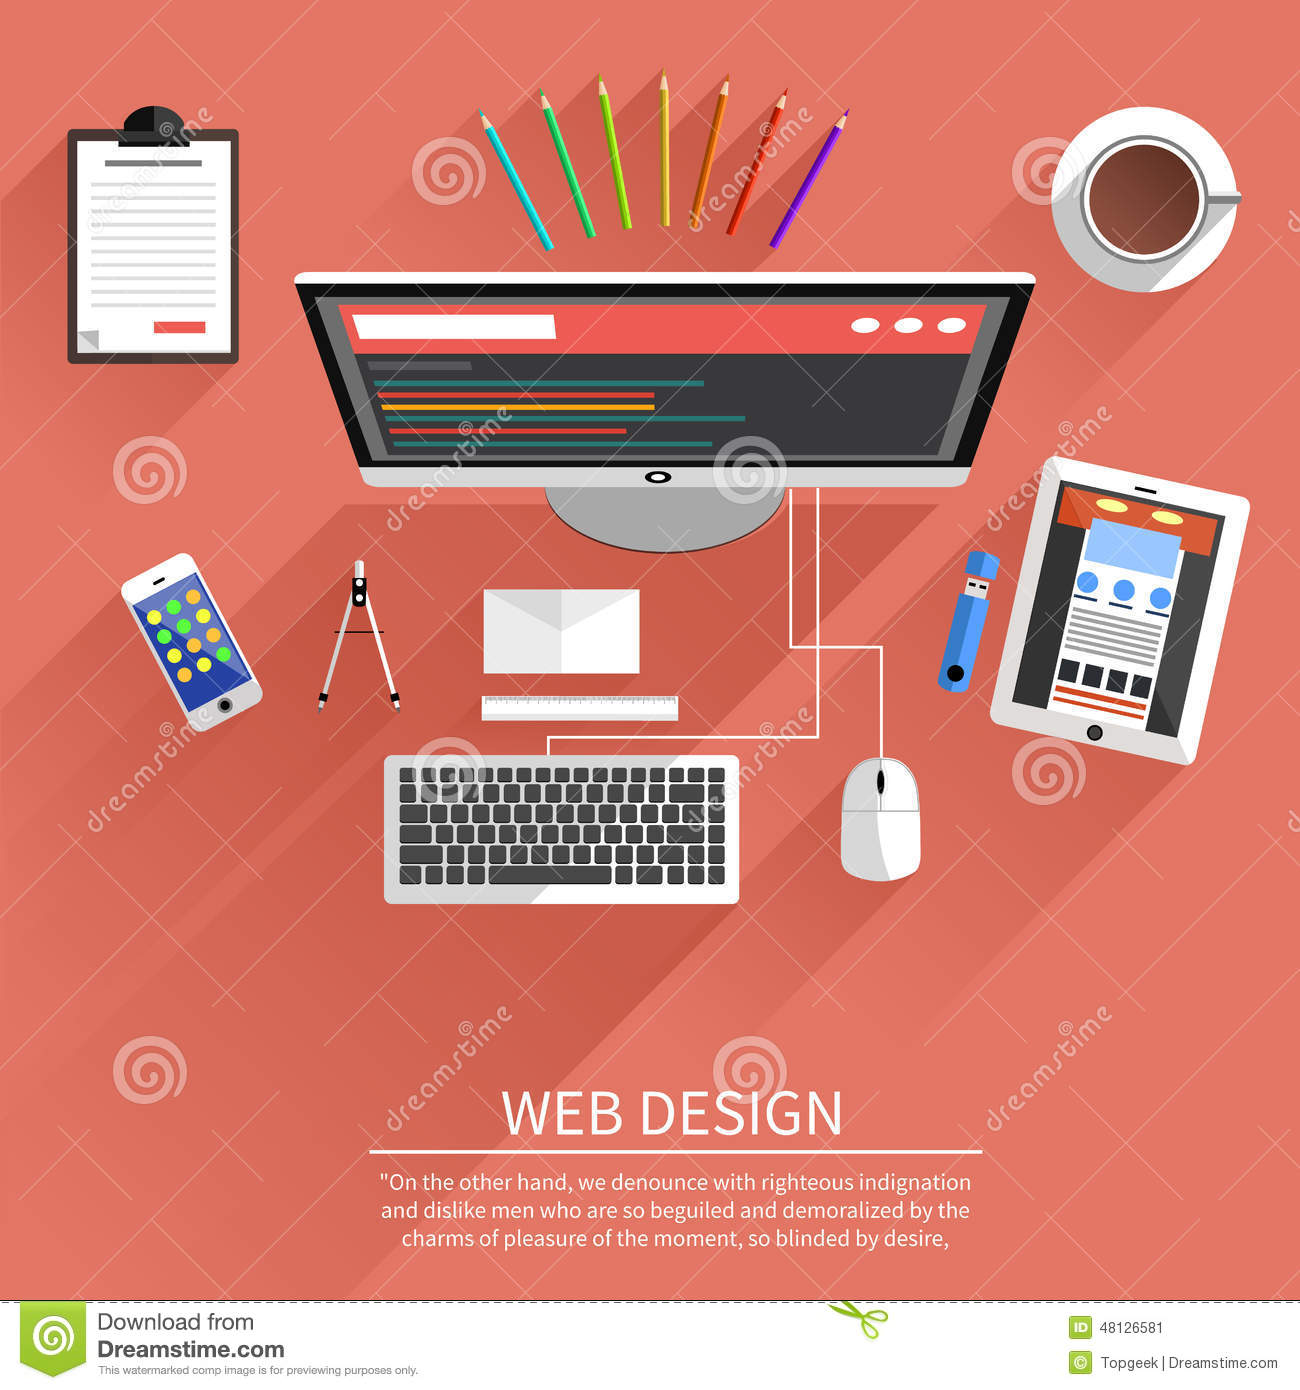 Web design program for design and architecture cartoon for Architecture design websites free